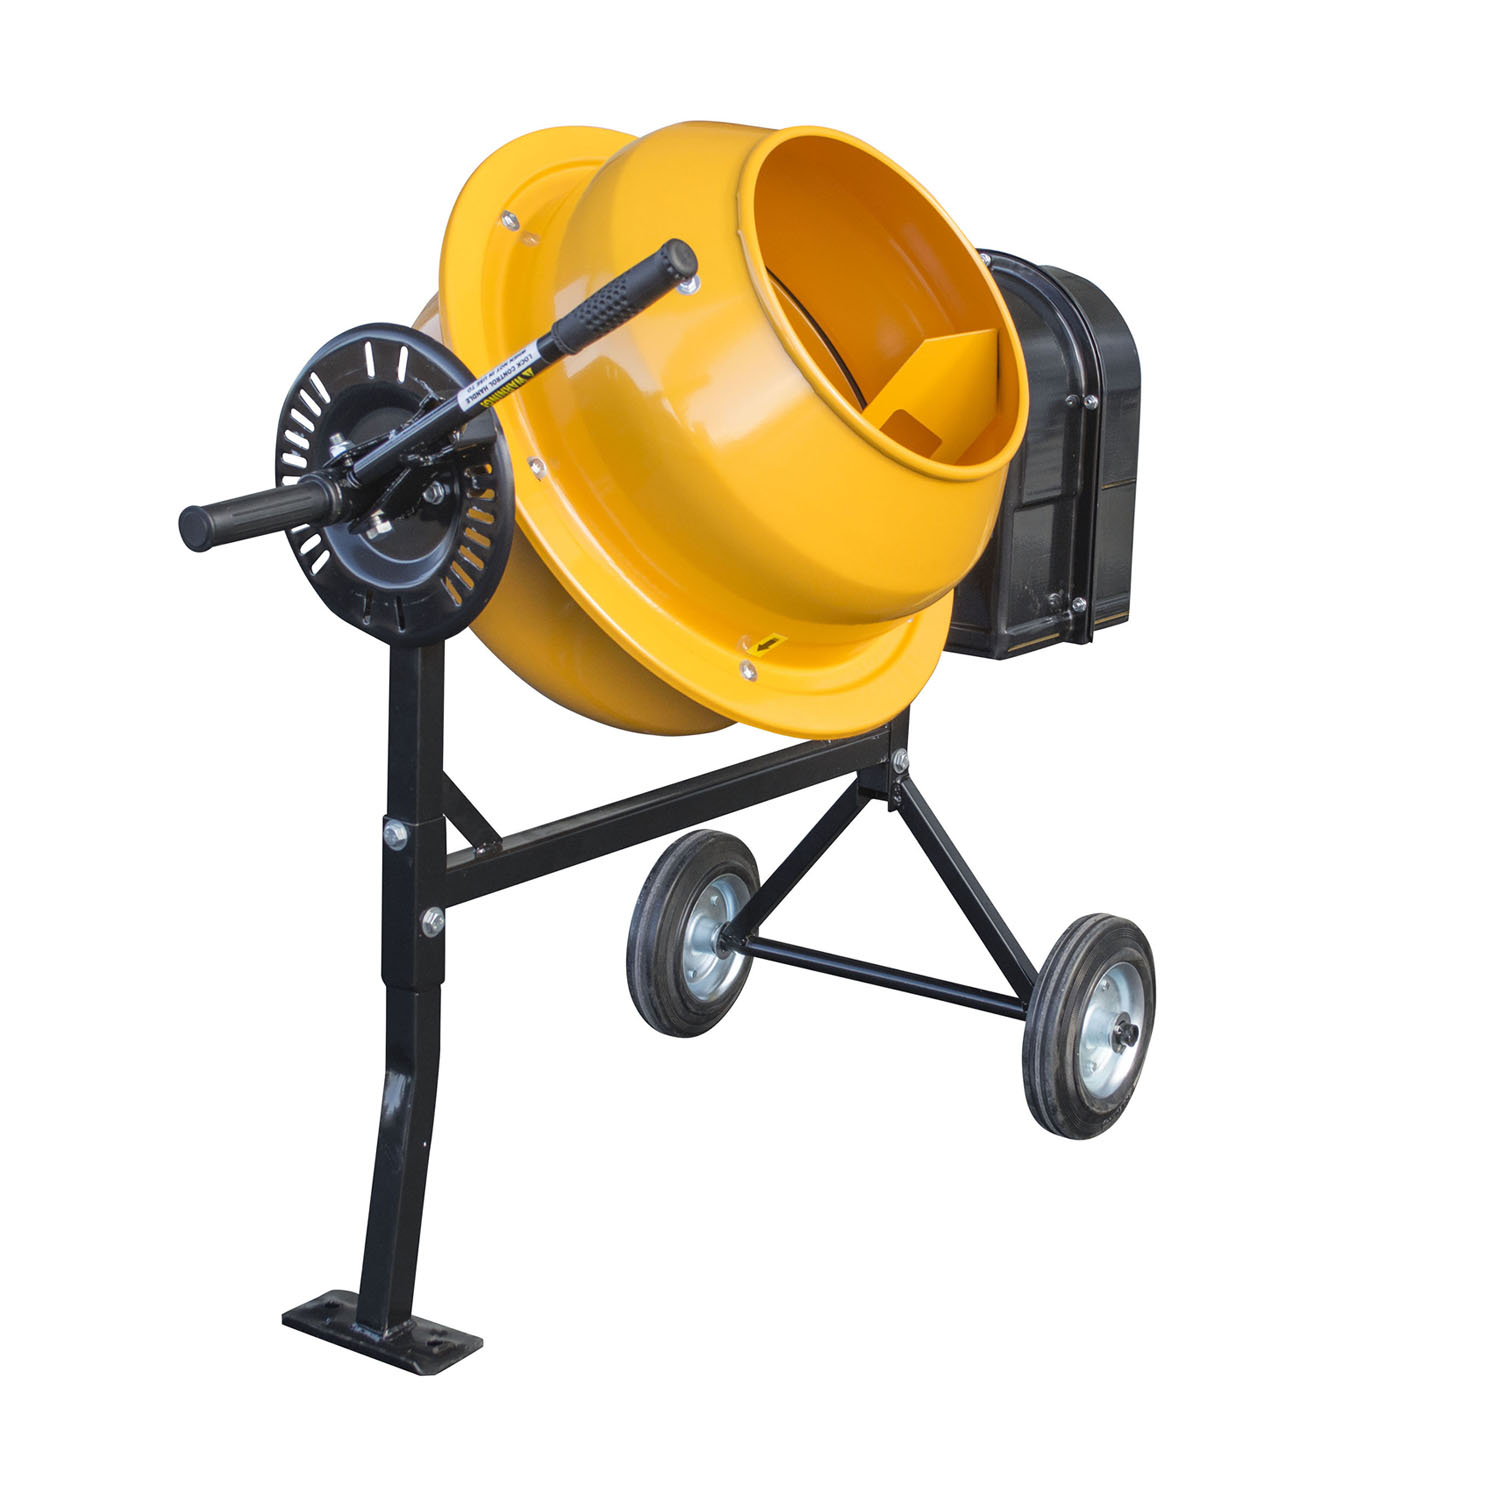 Offex 1.25 Cubic Foot Electric Cement Mixer by Offex